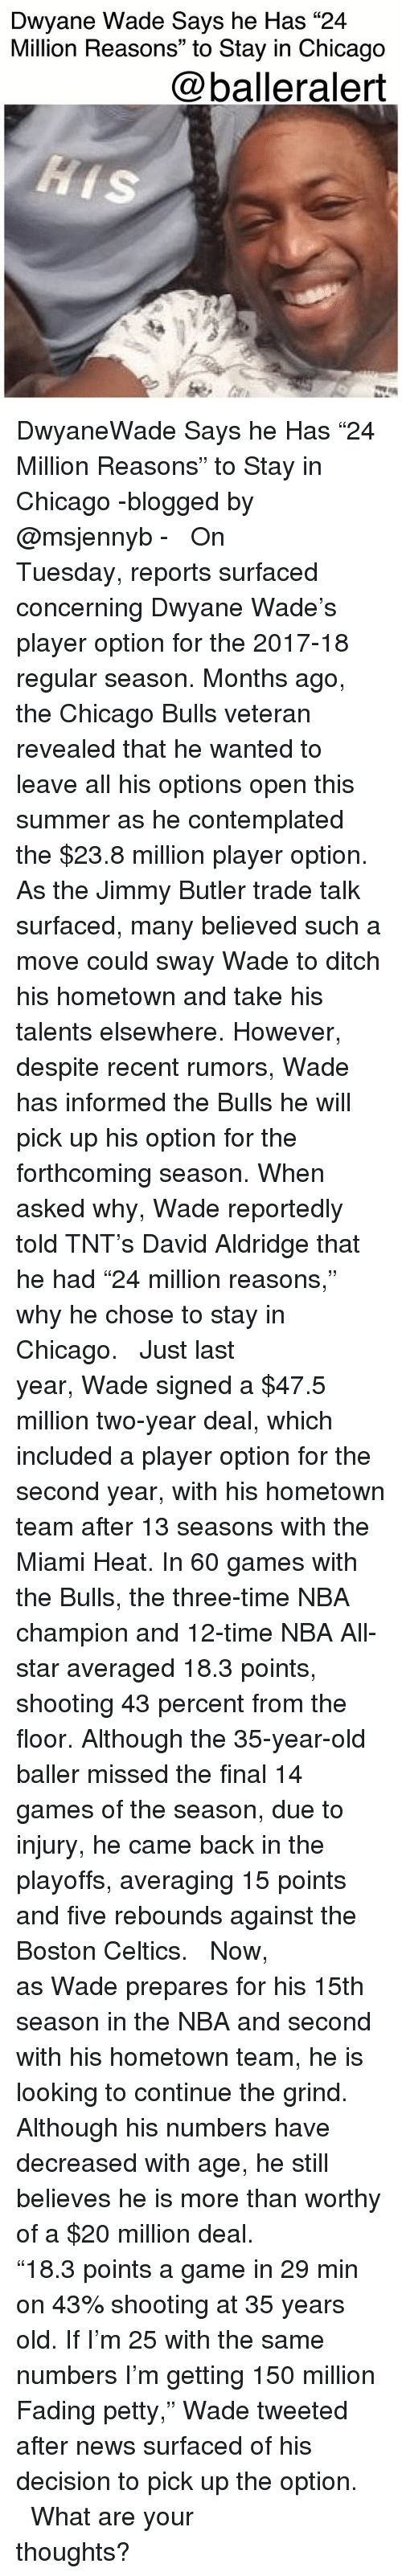 """Chicago Bulls: Dwyane Wade Says he Has """"24  Million Reasons"""" to Stay in Chicago  @balleralert DwyaneWade Says he Has """"24 Million Reasons"""" to Stay in Chicago -blogged by @msjennyb - ⠀⠀⠀⠀⠀⠀⠀ ⠀⠀⠀⠀⠀⠀⠀ On Tuesday, reports surfaced concerning Dwyane Wade's player option for the 2017-18 regular season. Months ago, the Chicago Bulls veteran revealed that he wanted to leave all his options open this summer as he contemplated the $23.8 million player option. As the Jimmy Butler trade talk surfaced, many believed such a move could sway Wade to ditch his hometown and take his talents elsewhere. However, despite recent rumors, Wade has informed the Bulls he will pick up his option for the forthcoming season. When asked why, Wade reportedly told TNT's David Aldridge that he had """"24 million reasons,"""" why he chose to stay in Chicago. ⠀⠀⠀⠀⠀⠀⠀ ⠀⠀⠀⠀⠀⠀⠀ Just last year, Wade signed a $47.5 million two-year deal, which included a player option for the second year, with his hometown team after 13 seasons with the Miami Heat. In 60 games with the Bulls, the three-time NBA champion and 12-time NBA All-star averaged 18.3 points, shooting 43 percent from the floor. Although the 35-year-old baller missed the final 14 games of the season, due to injury, he came back in the playoffs, averaging 15 points and five rebounds against the Boston Celtics. ⠀⠀⠀⠀⠀⠀⠀ ⠀⠀⠀⠀⠀⠀⠀ Now, as Wade prepares for his 15th season in the NBA and second with his hometown team, he is looking to continue the grind. Although his numbers have decreased with age, he still believes he is more than worthy of a $20 million deal. ⠀⠀⠀⠀⠀⠀⠀ ⠀⠀⠀⠀⠀⠀⠀ """"18.3 points a game in 29 min on 43% shooting at 35 years old. If I'm 25 with the same numbers I'm getting 150 million Fading petty,"""" Wade tweeted after news surfaced of his decision to pick up the option. ⠀⠀⠀⠀⠀⠀⠀ ⠀⠀⠀⠀⠀⠀⠀ What are your thoughts?"""